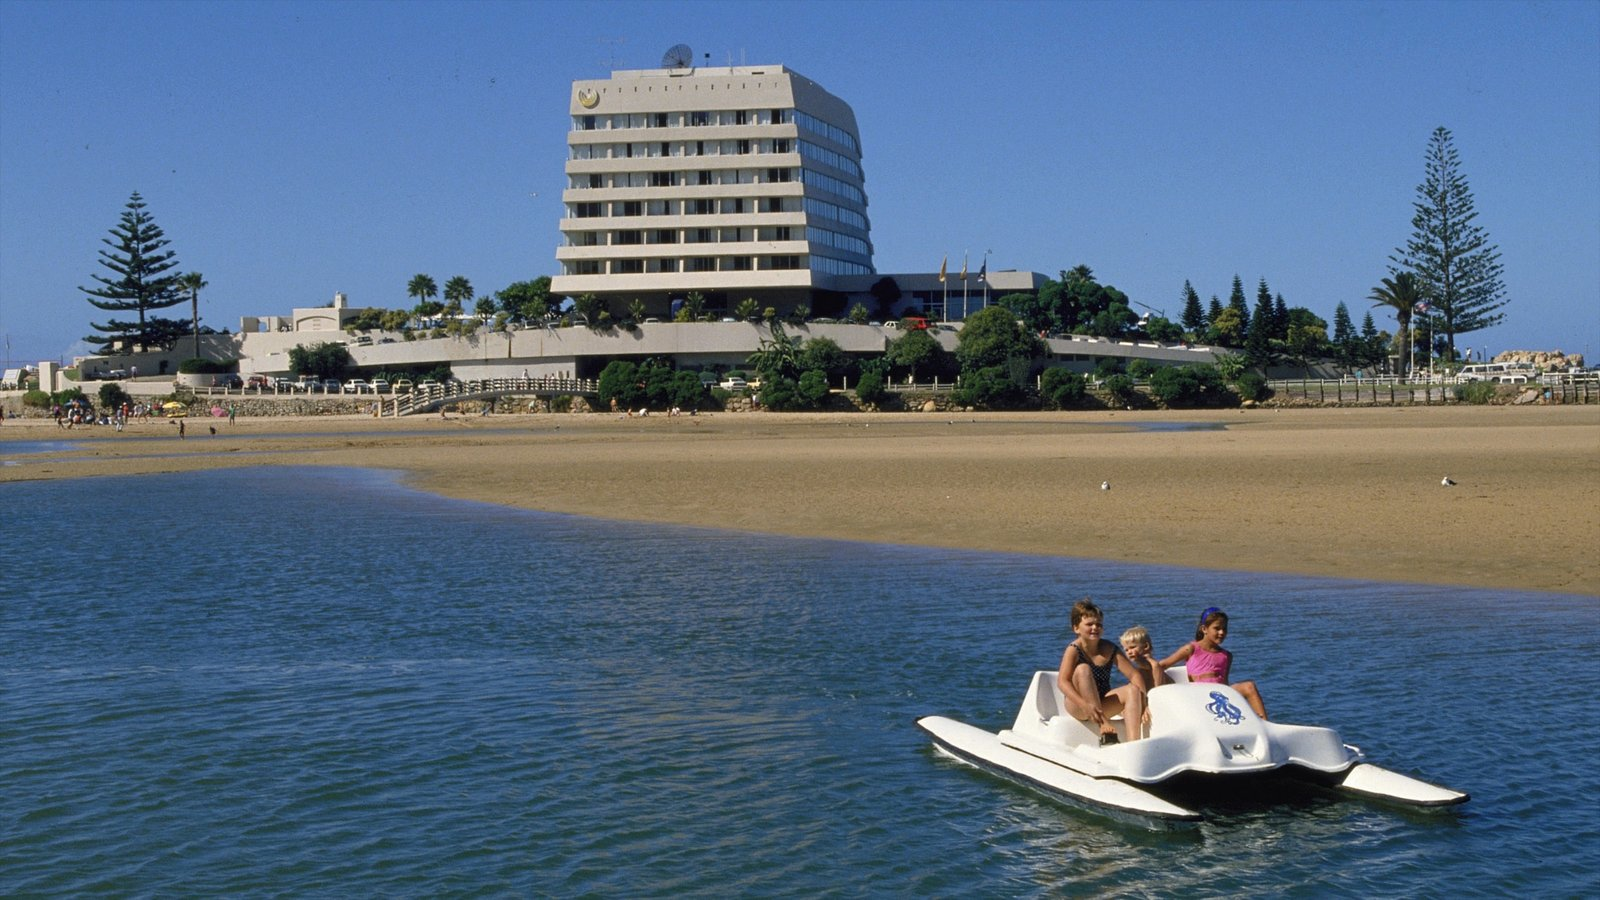 Plettenberg Bay featuring a bay or harbor, a beach and a coastal town